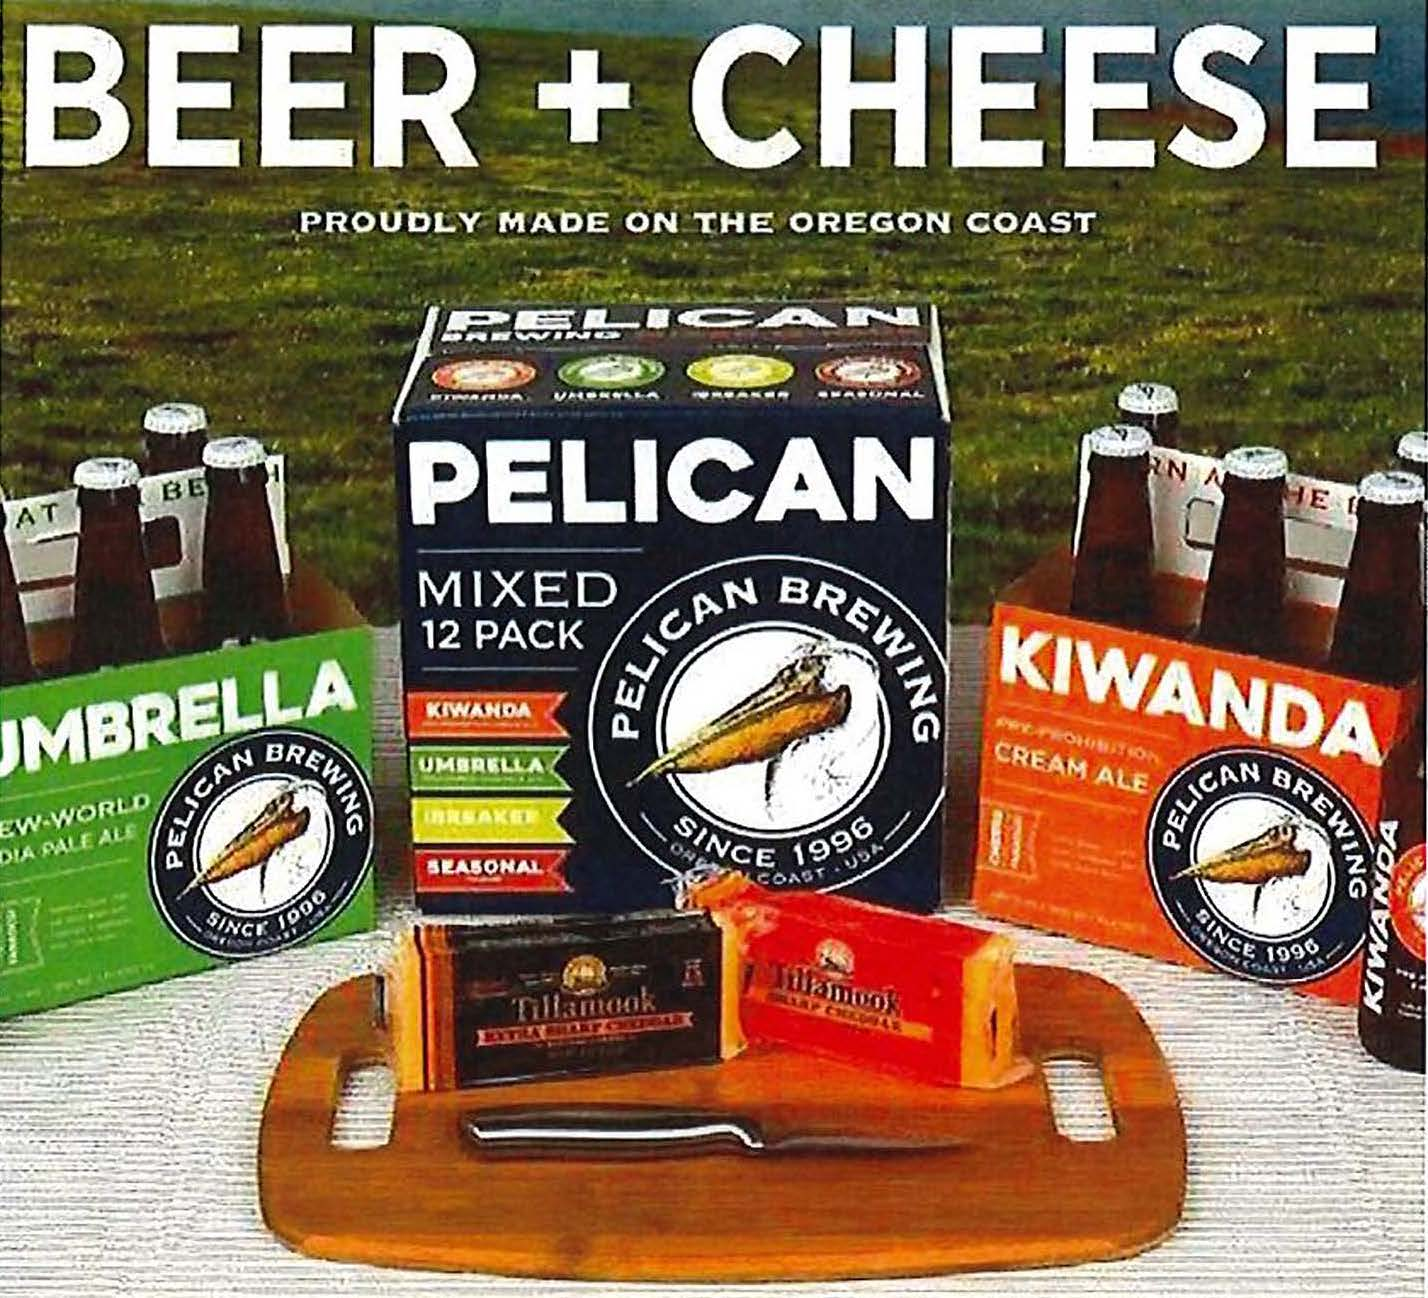 Beer and cheese2jpeg